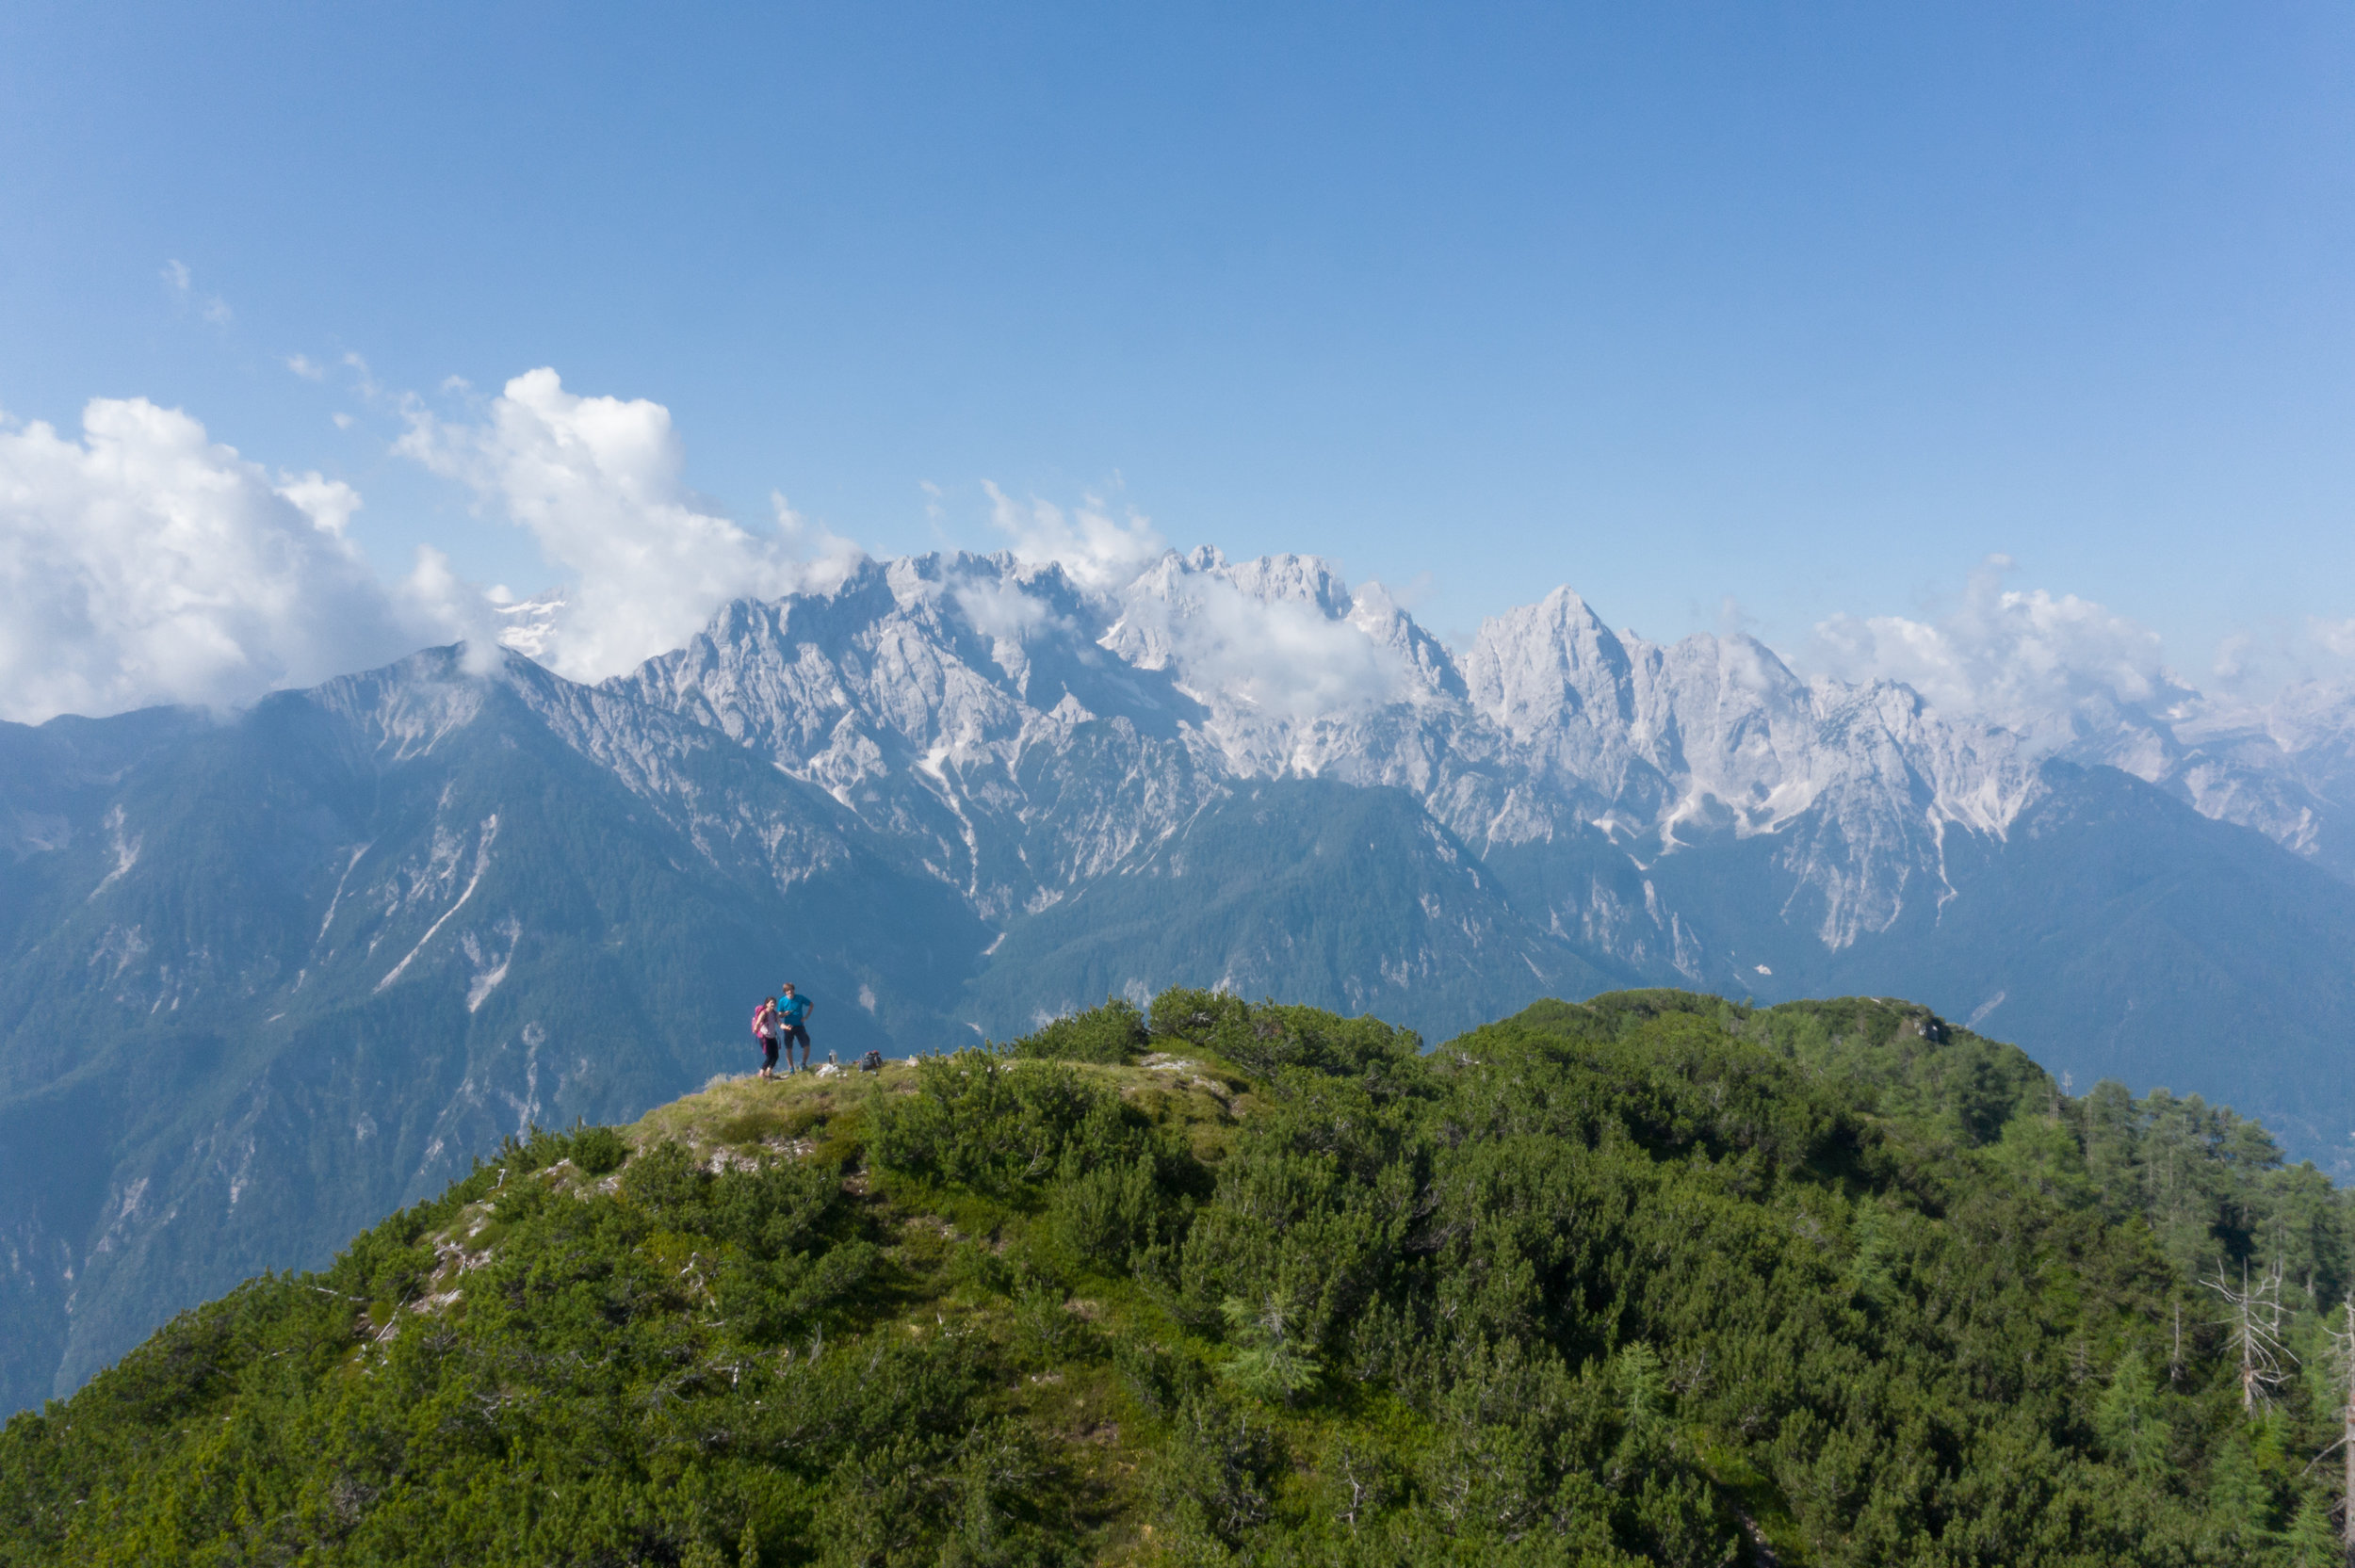 Great view towards the northern walls of the Martuljek Mountain Chain. The High Chicken Summit is only 1828 meters high, but it offers nice views of the landscapes surrounding it.